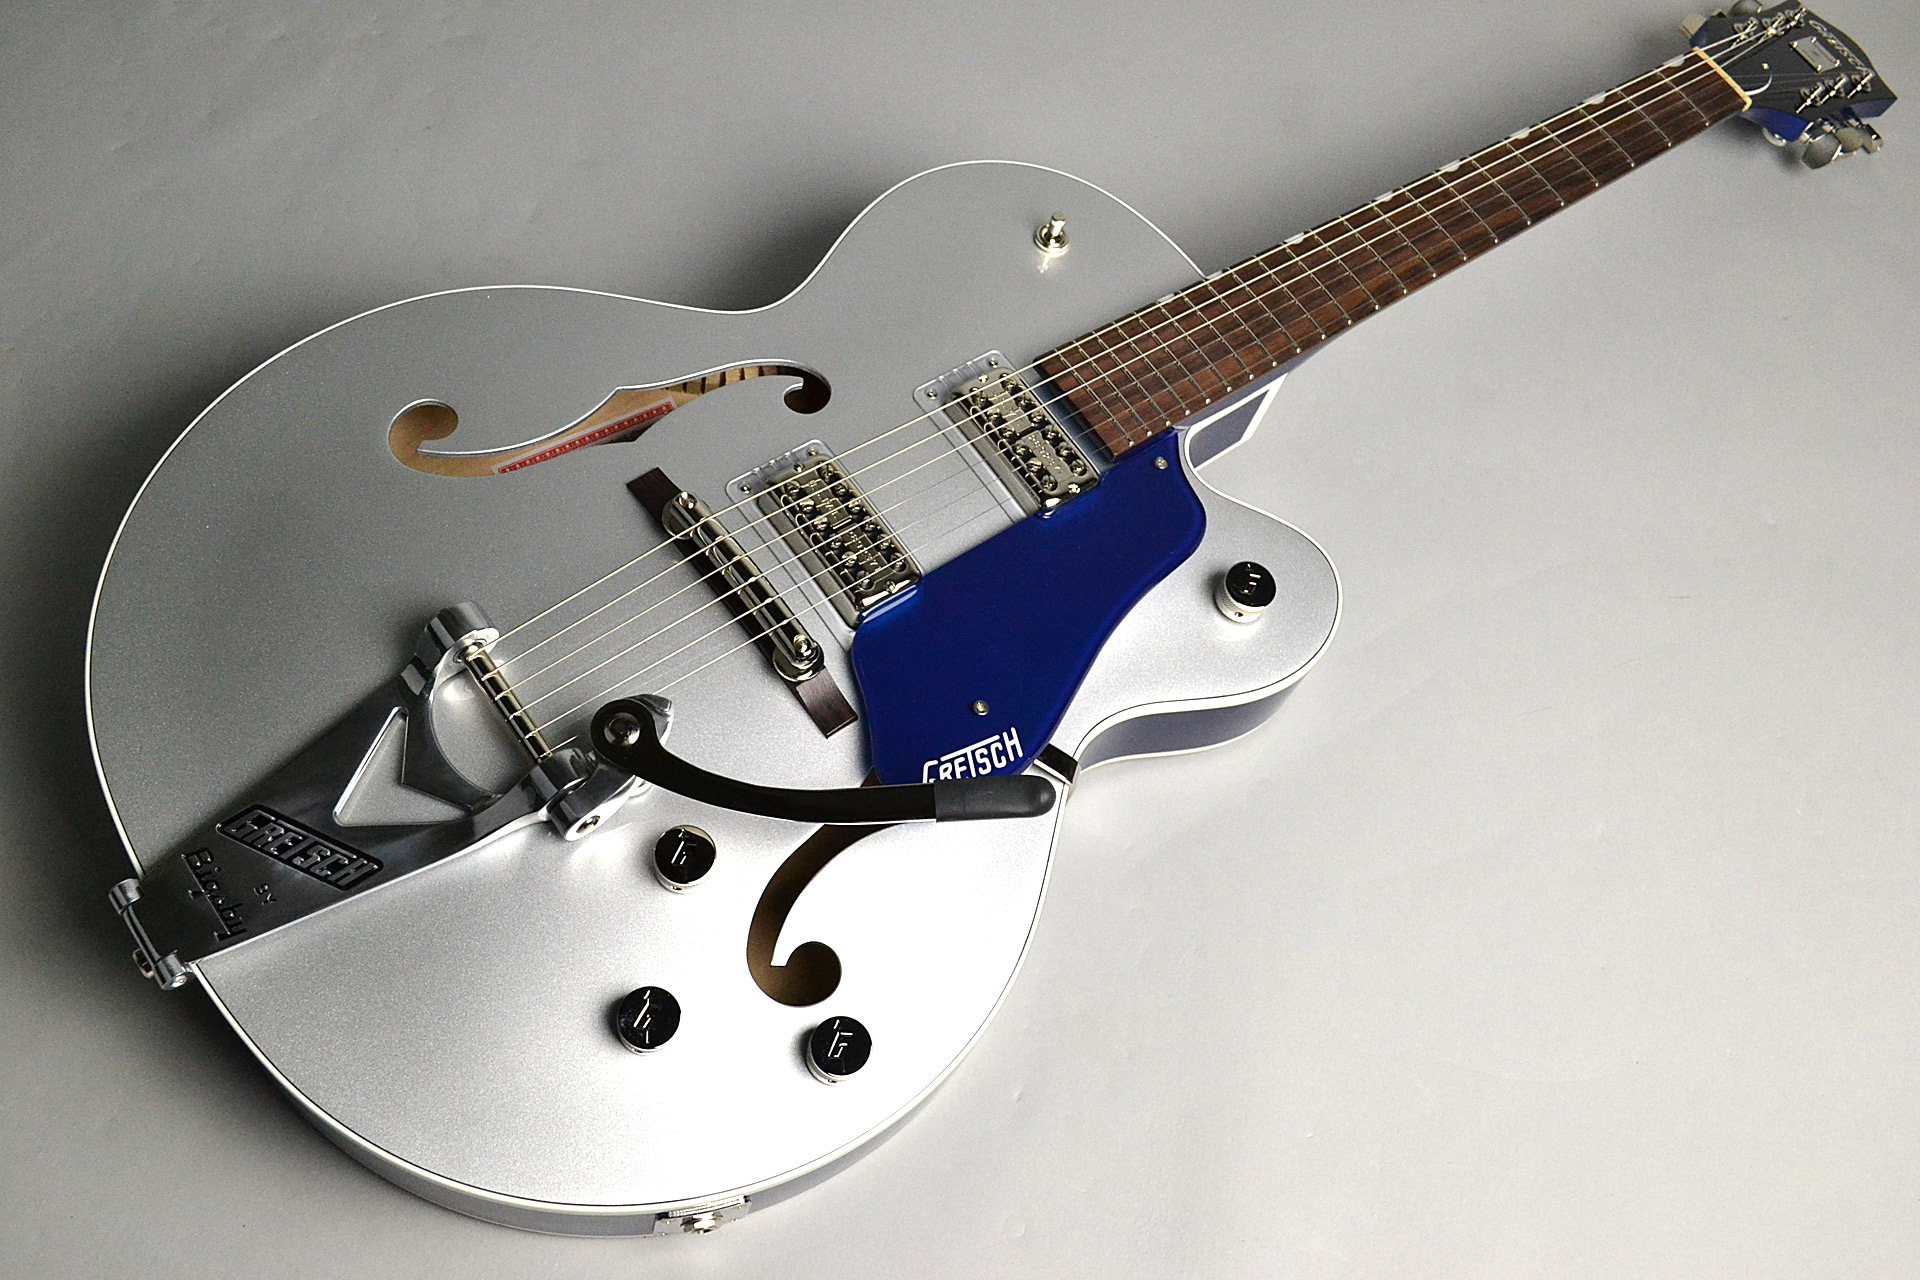 G6118T Players Edition Anniversary 2-Tone Iridium Silver/Azure Metallicの全体画像